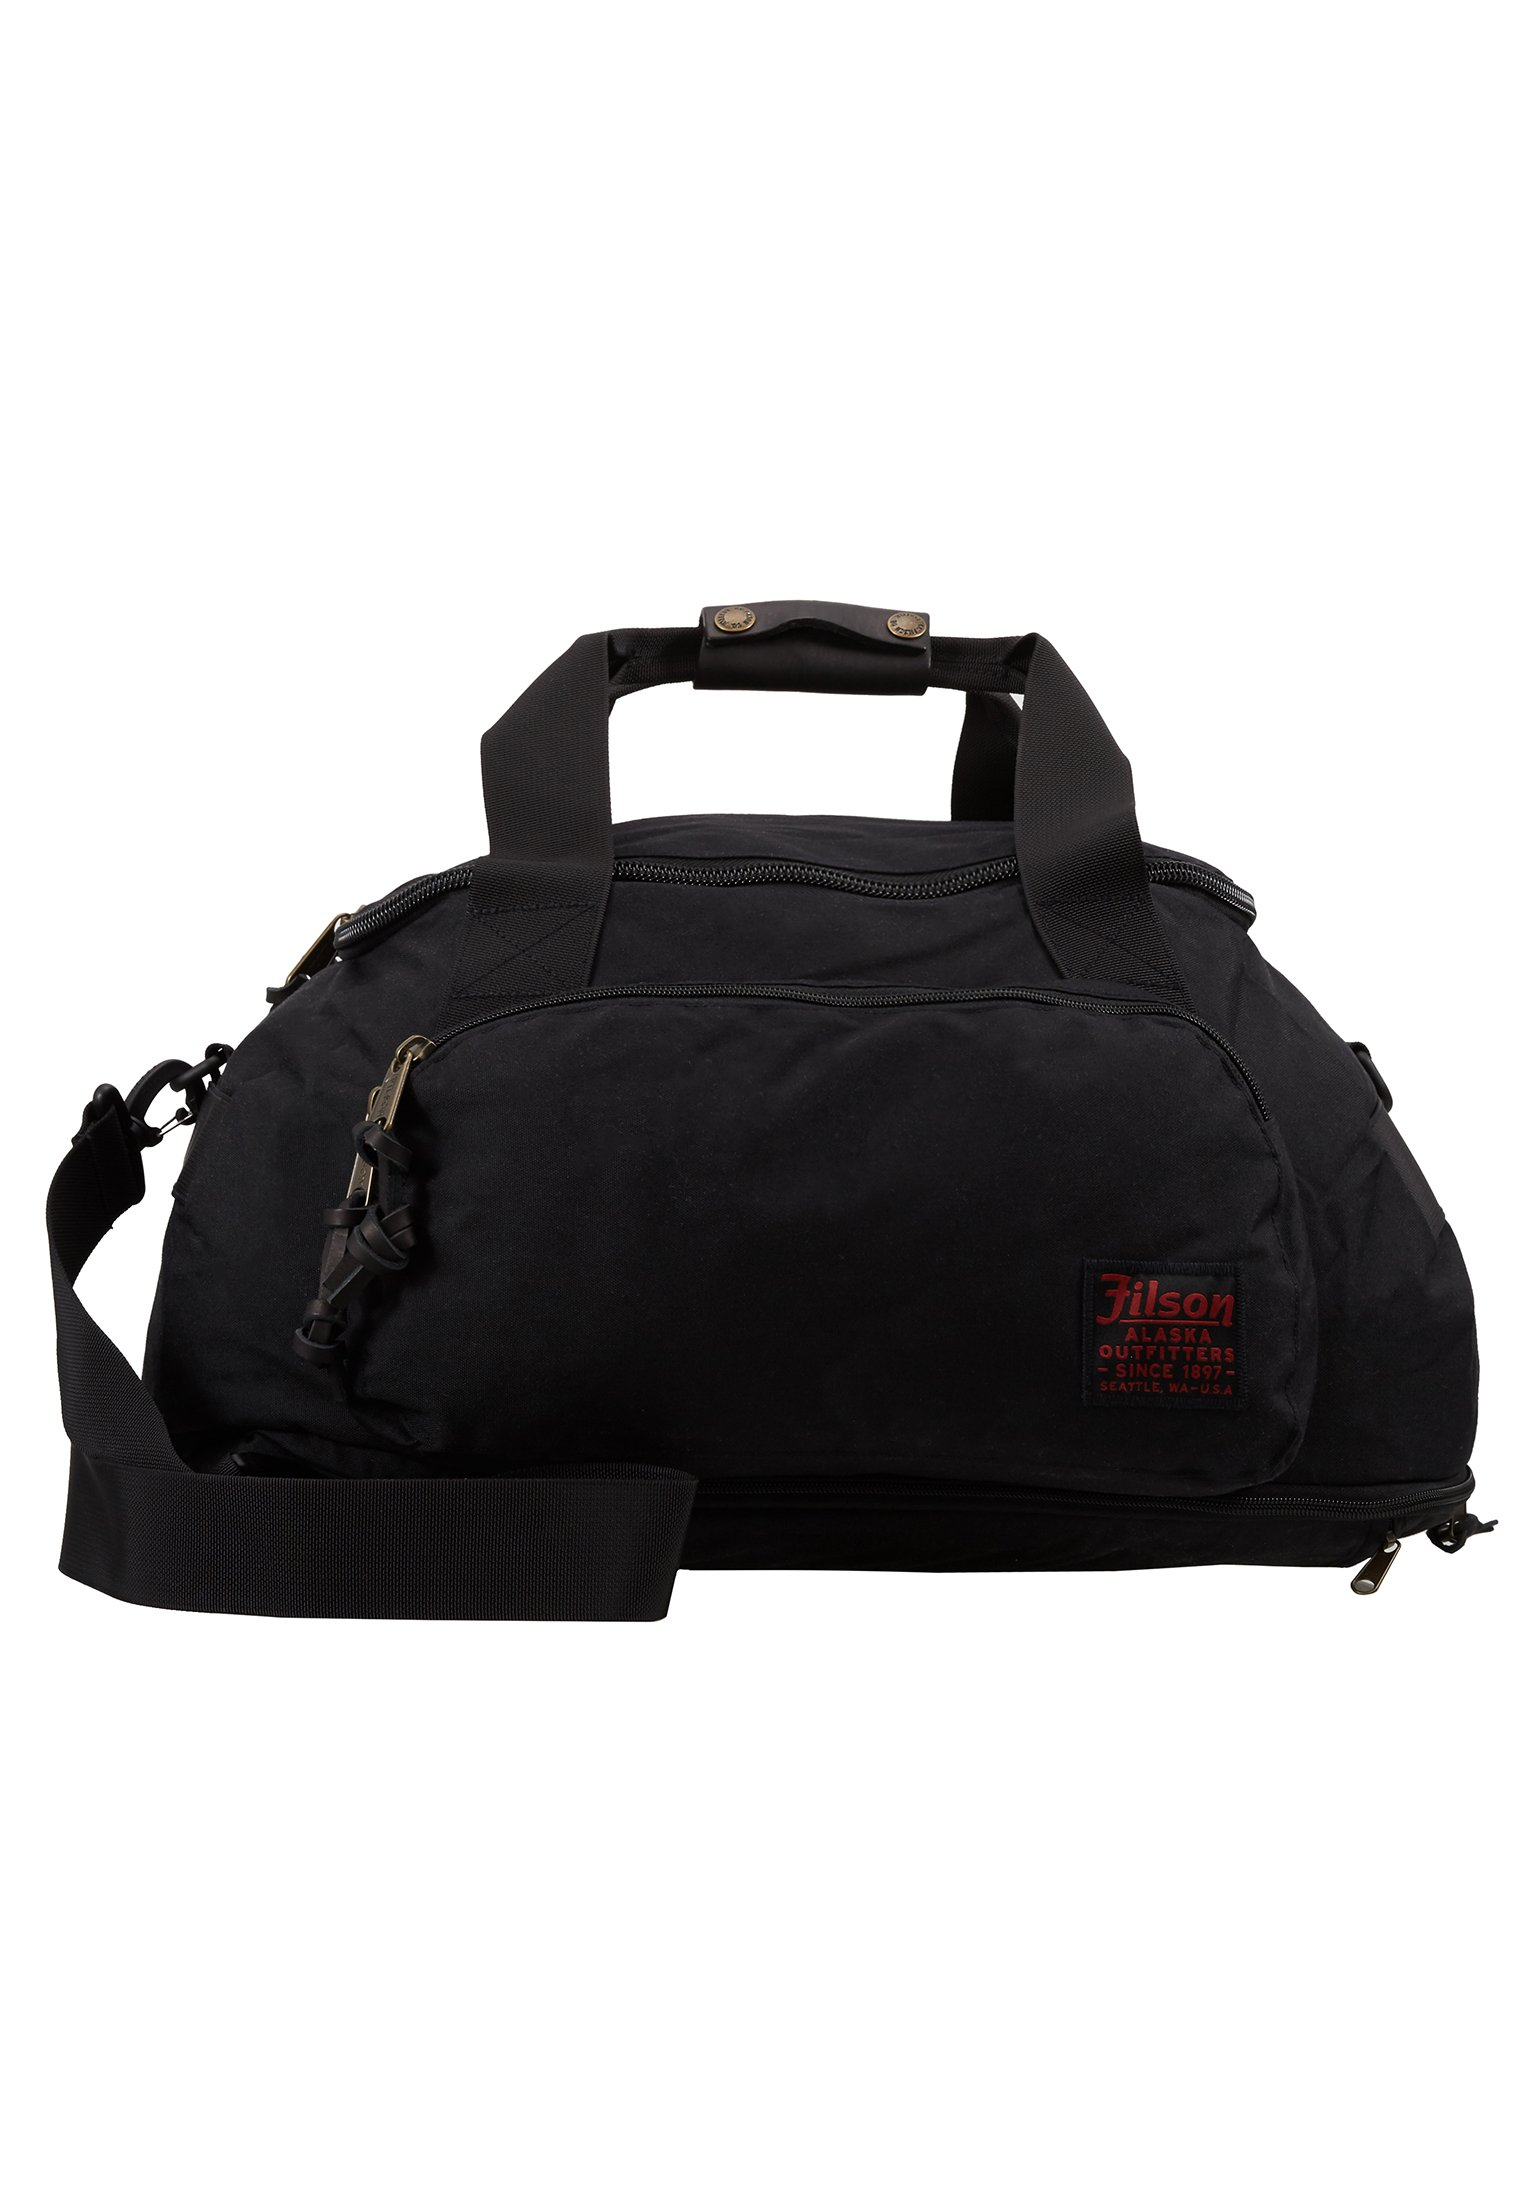 Filson Duffle Backpack - Ryggsekk Dark Navy